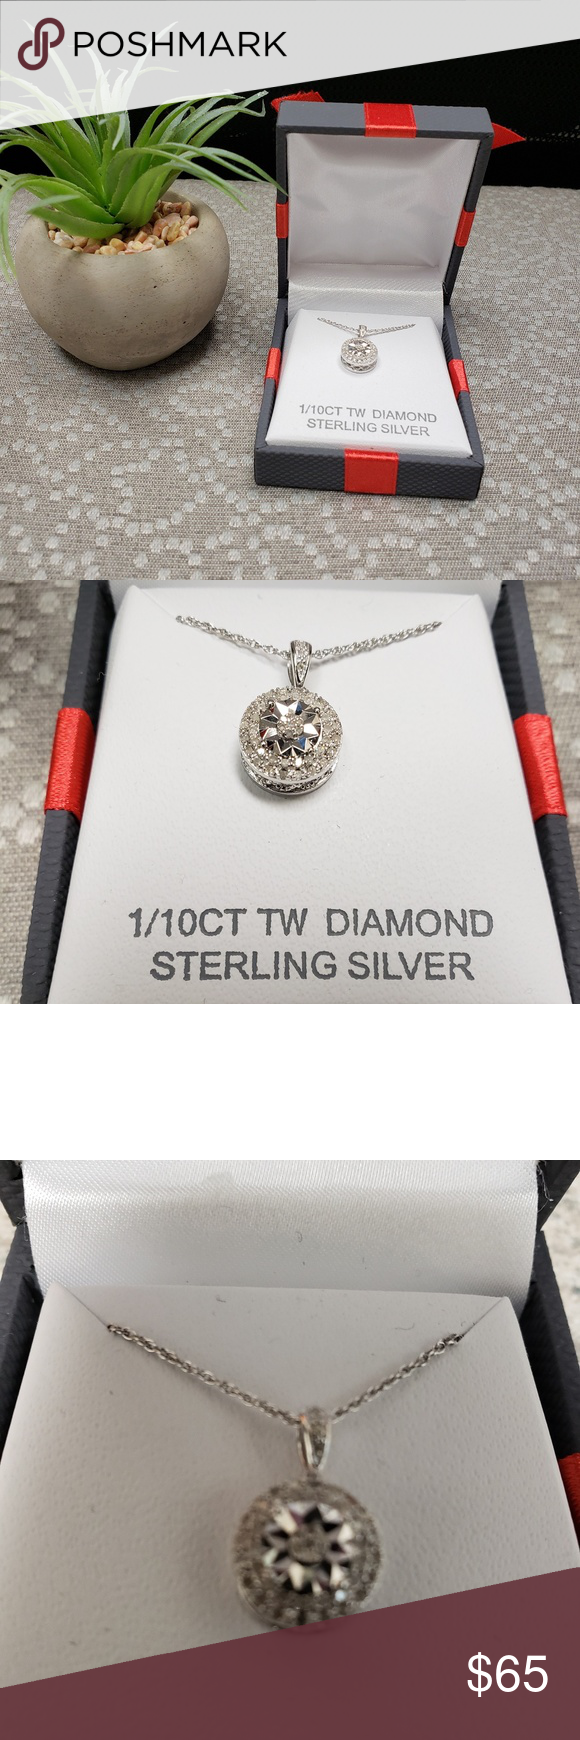 1 10 Ct Tw Diamond Sterling Silver Necklace Jewelry Making Supplies Sterling Silver Necklaces Silver Chain Necklace